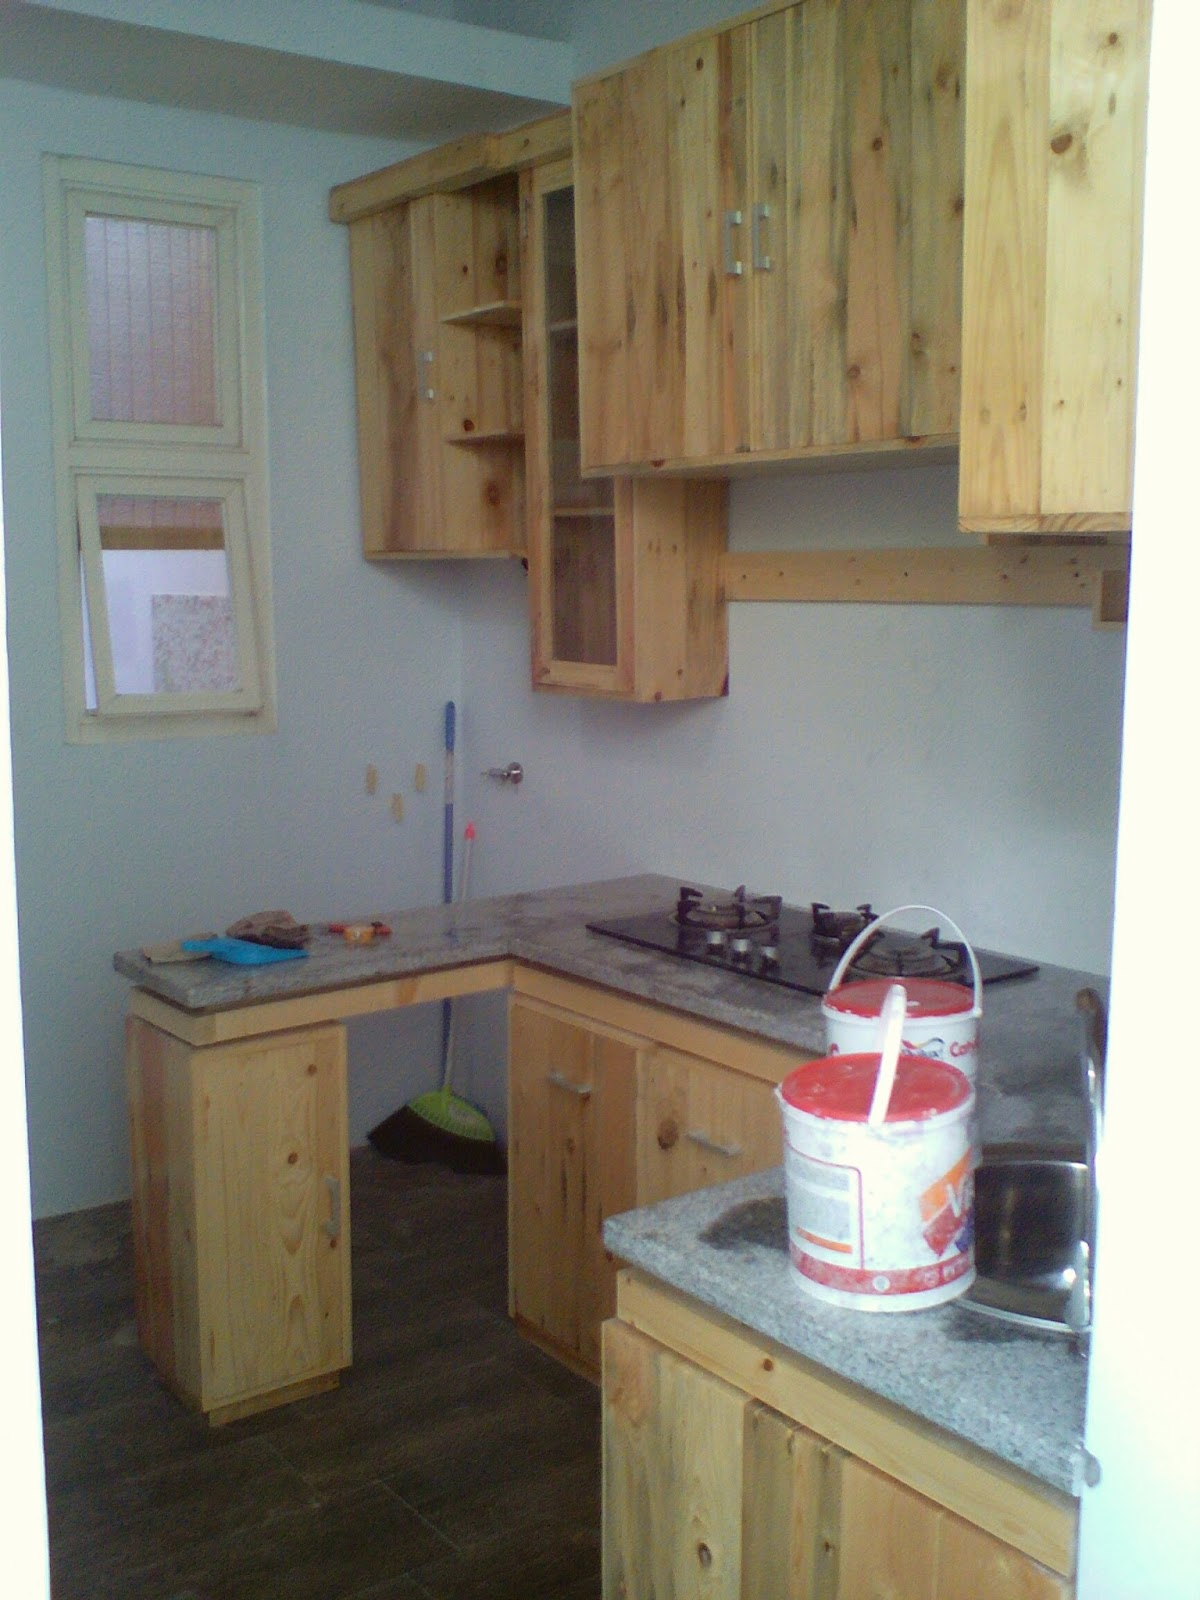 Kitchen set kayu pinus kitchen set kayu for Kitchen set kayu